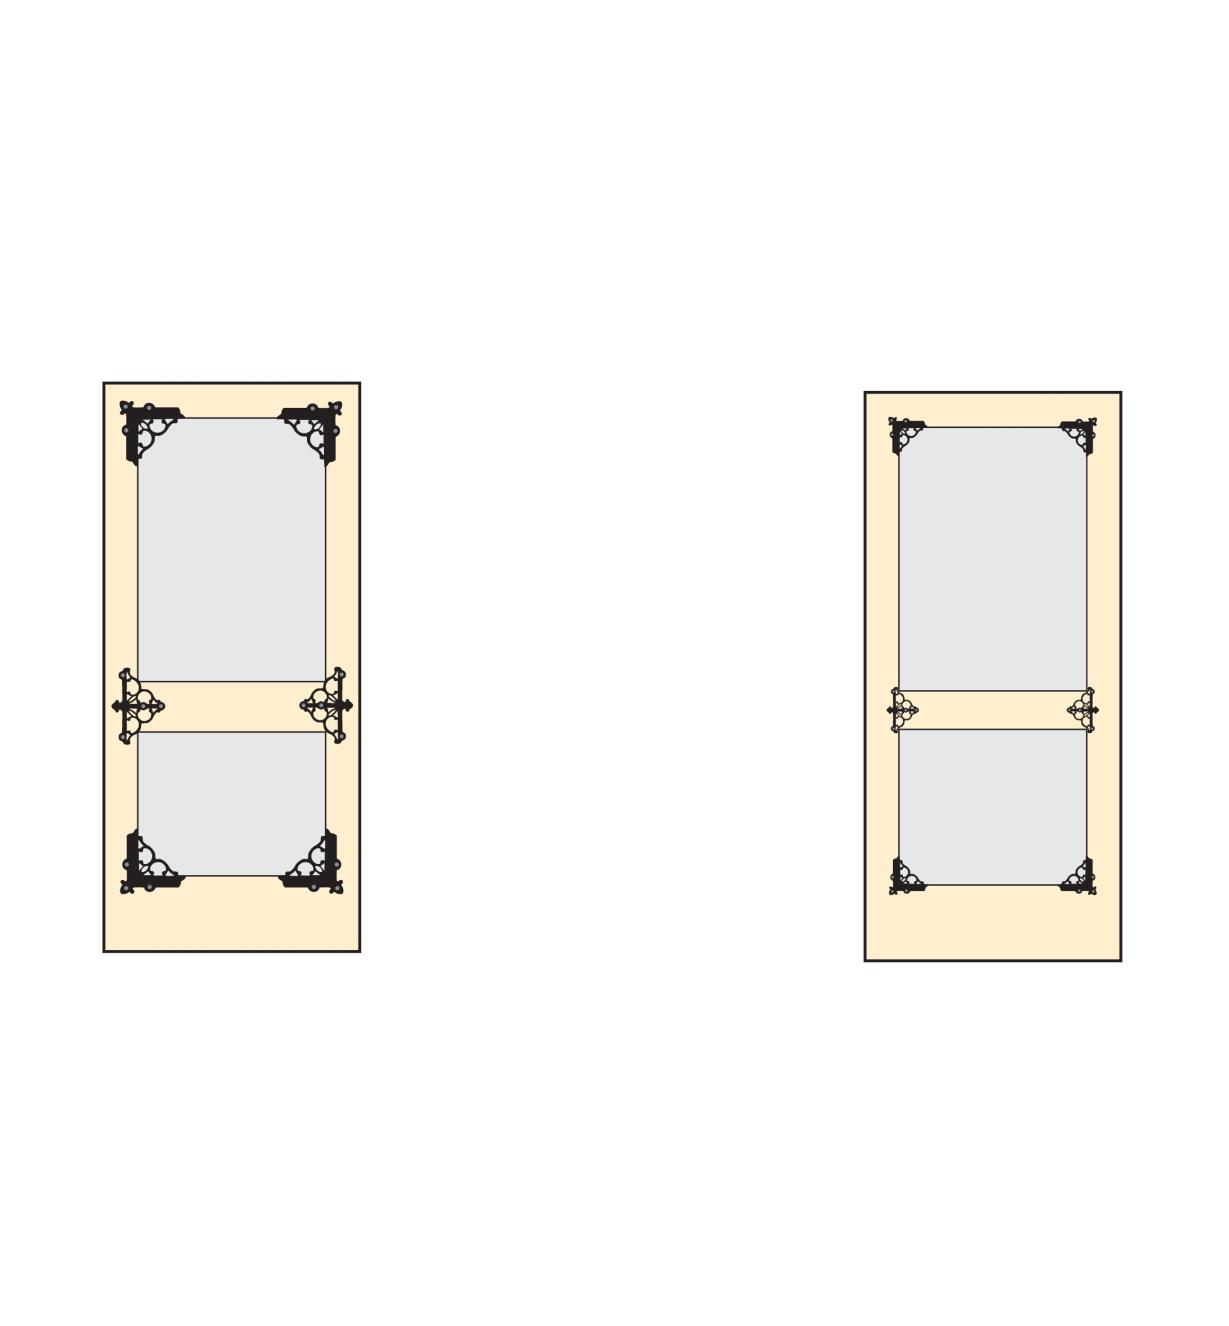 Diagrams show four braces at the corners and two brackets on the center rail of a door